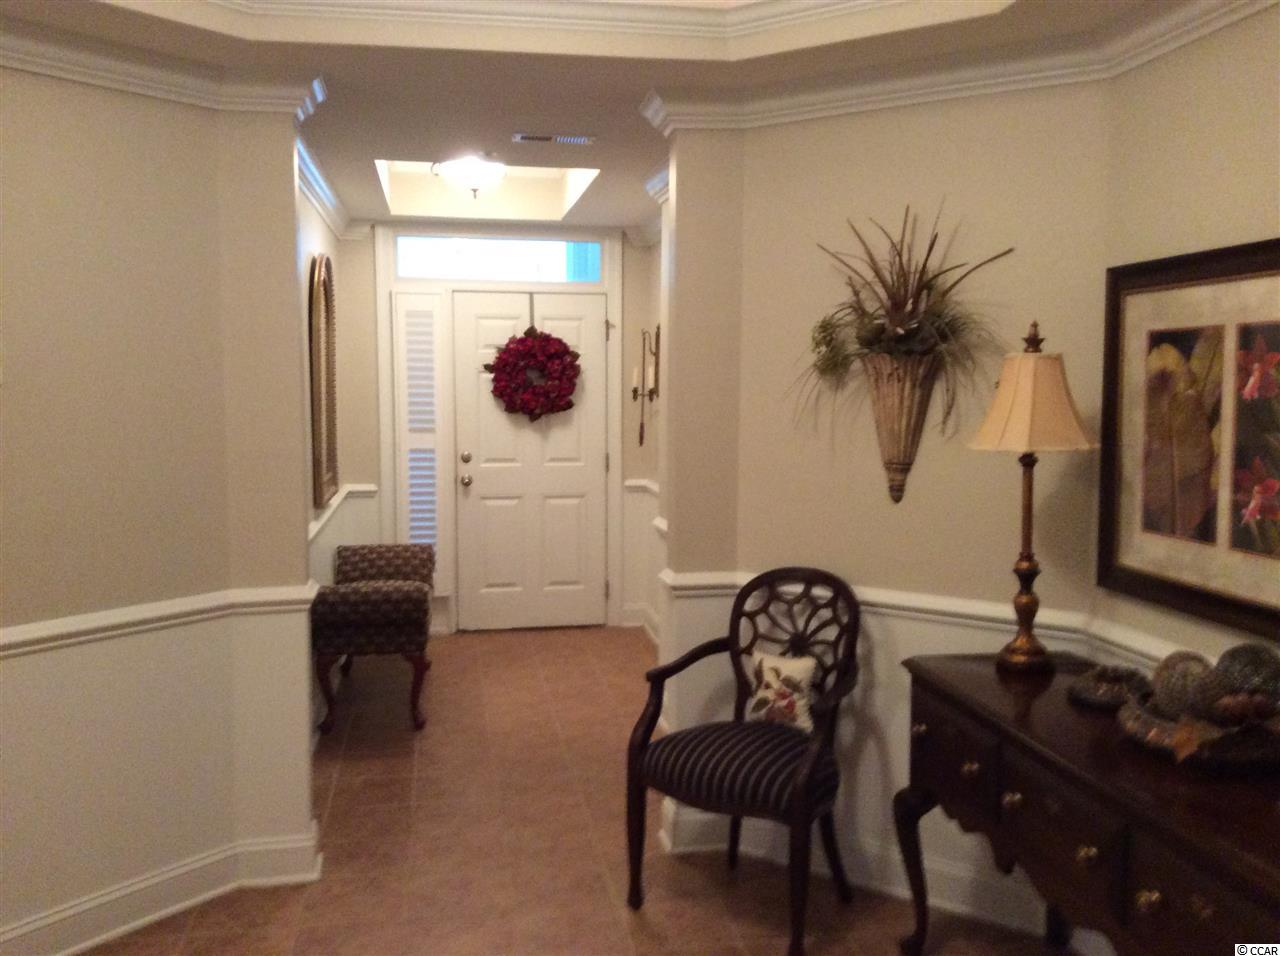 703 condo for sale in Murrells Inlet, SC